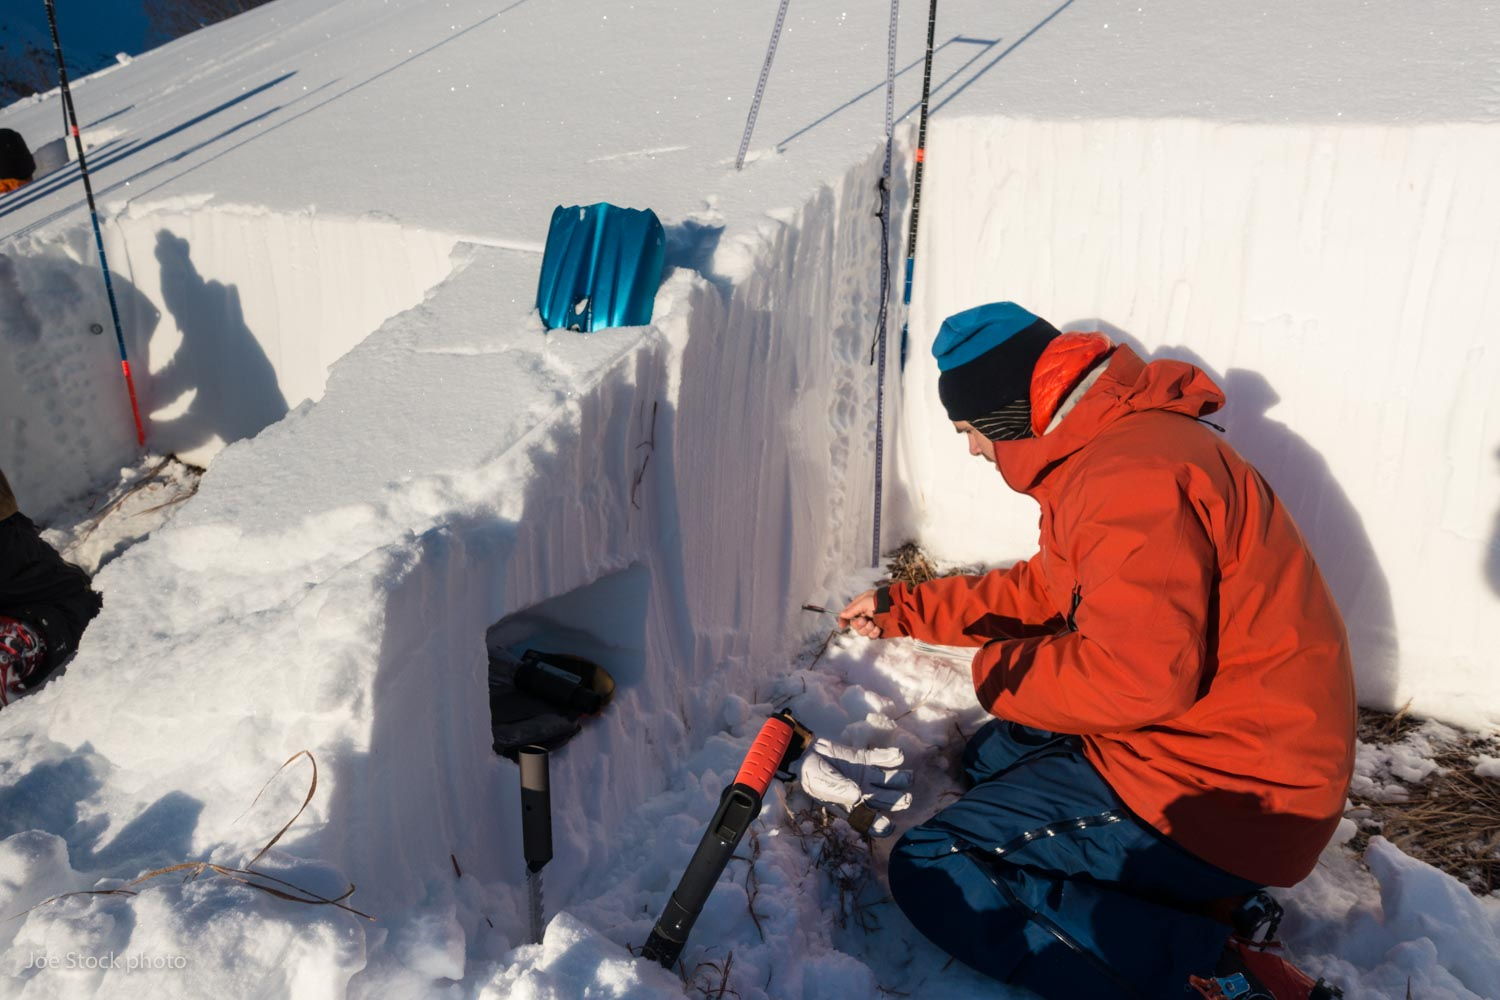 Pro 1 avalanche course with Alaska Avalanche School at Turnagain Pass. This was my first time assessing students on a pass/fail course. The students were VERY attentive. The course gave me a renewed appreciation for full snow profiles. Although far detached from making good decisions while moving through avalanche terrain, these time-intensive pits are a valuable process for learning about snowpack and taking accurate measurements.